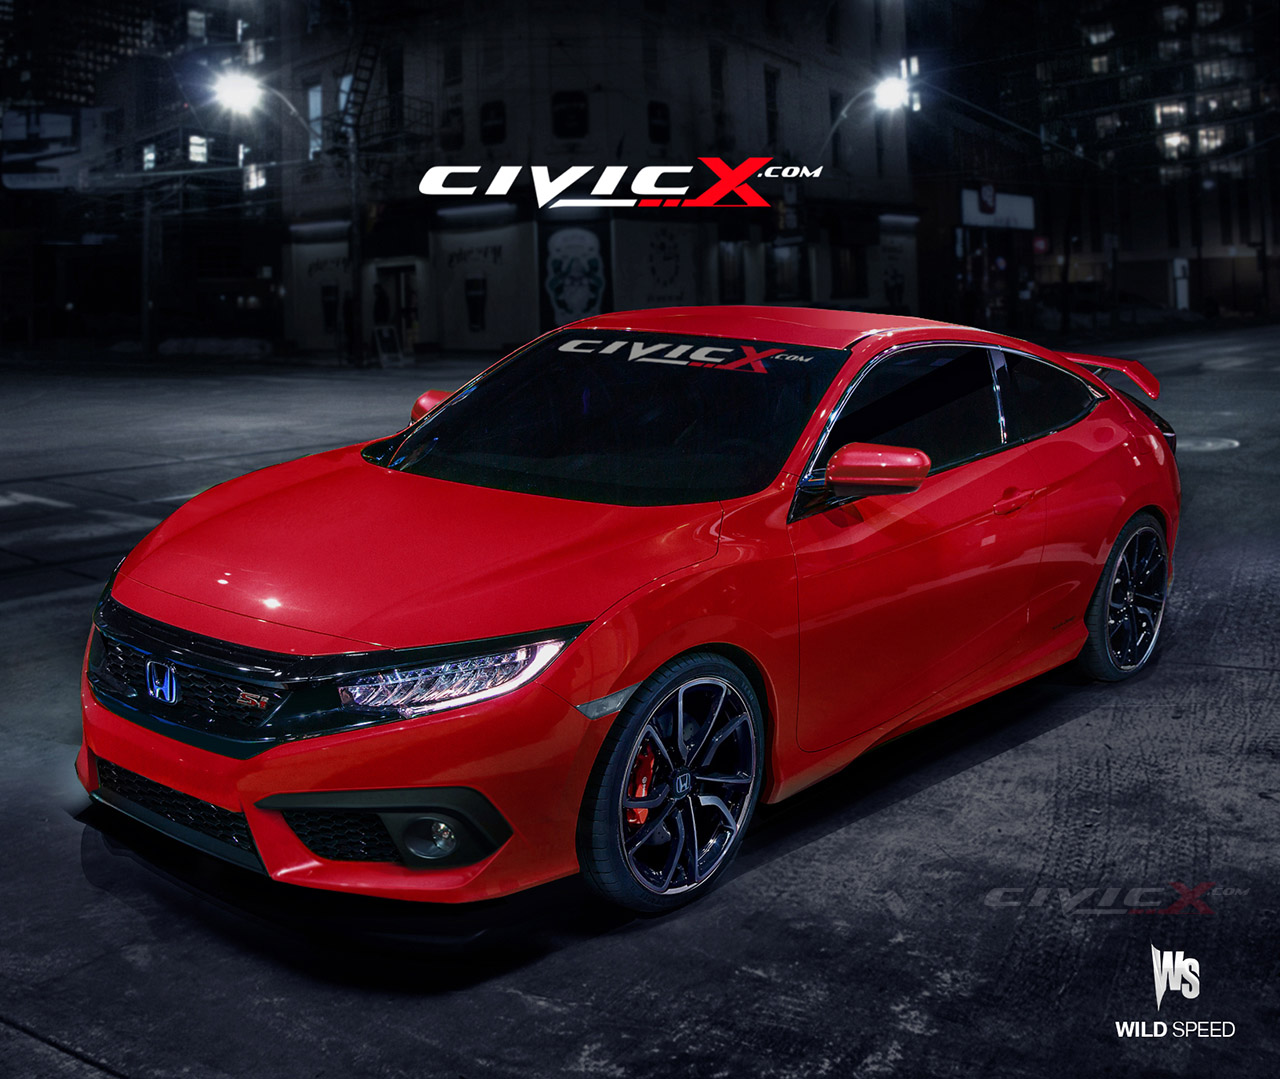 10 Photos 2016 Civic Si